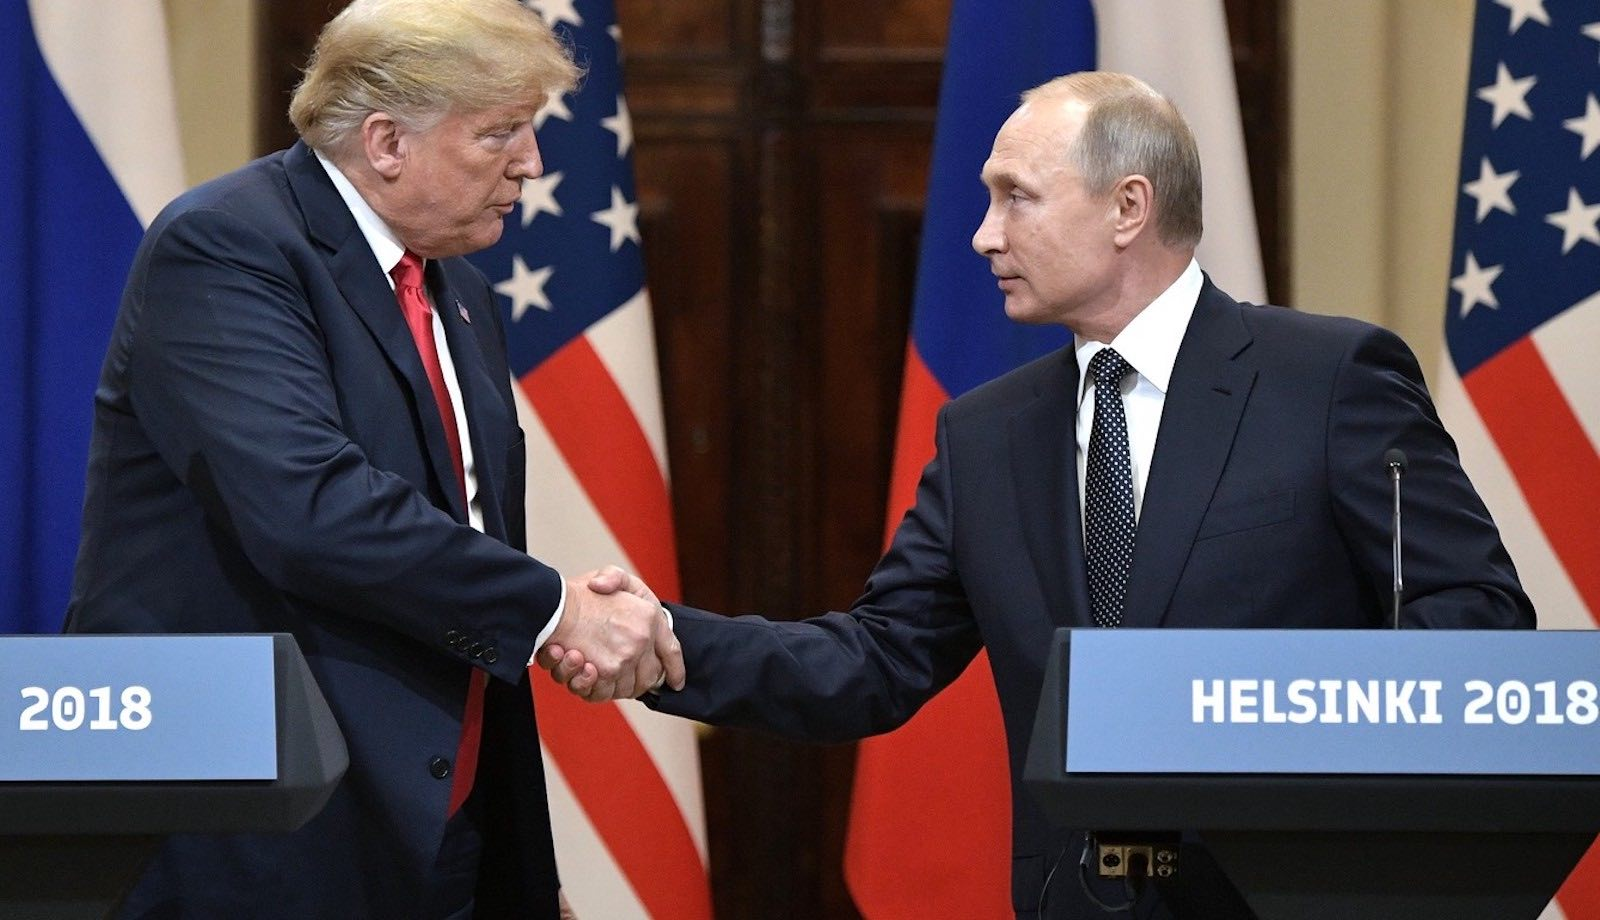 Donald Trump and Vladimir Putin at a joint press conference in Helsinki (Photo: Kremlin.ru)